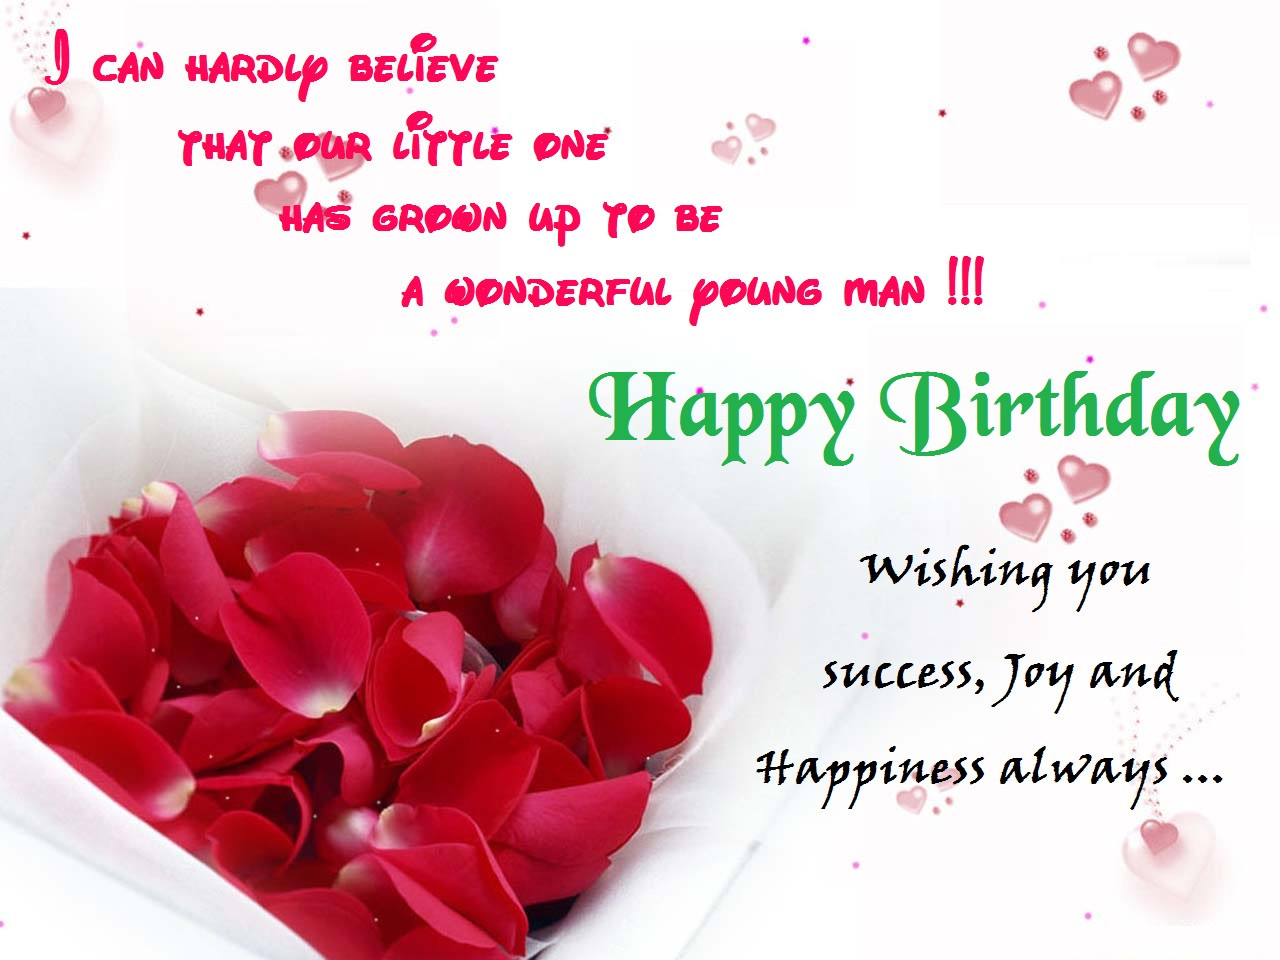 Best ideas about Happy Birthday Wishes For Her . Save or Pin Birthday Messages Now.